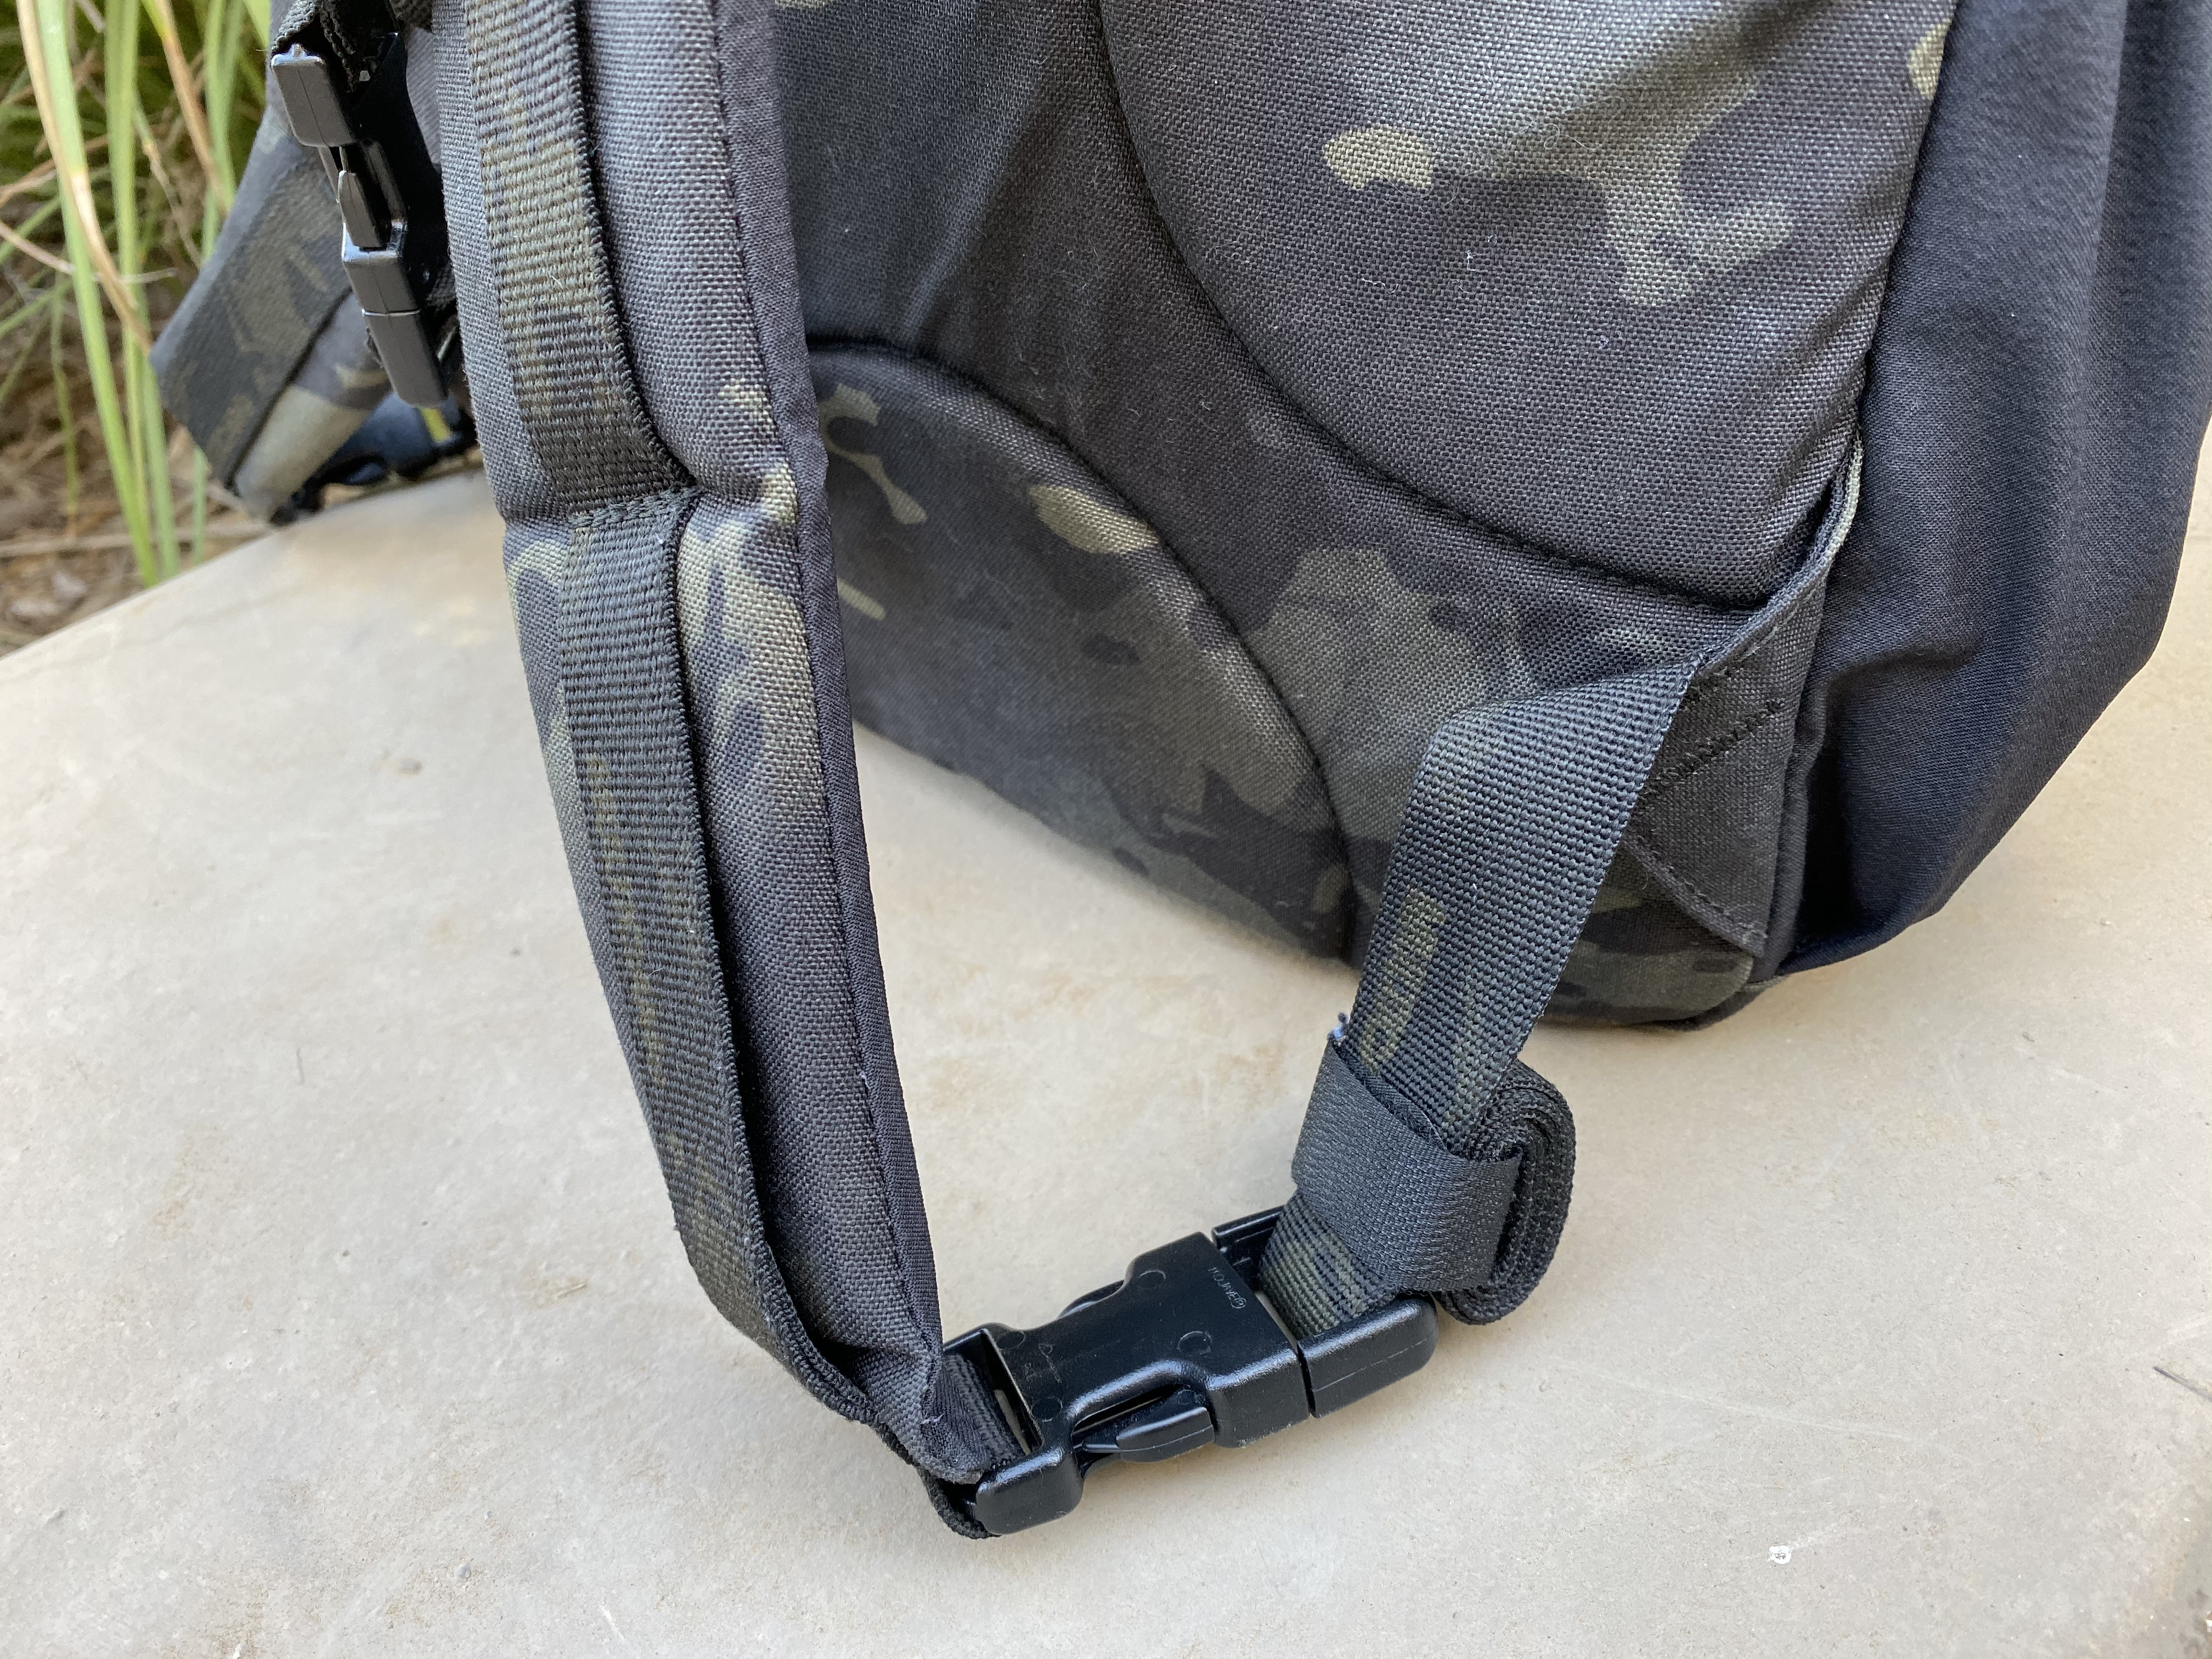 LBD 8005A Day Pack Review strap management velcro onewrap